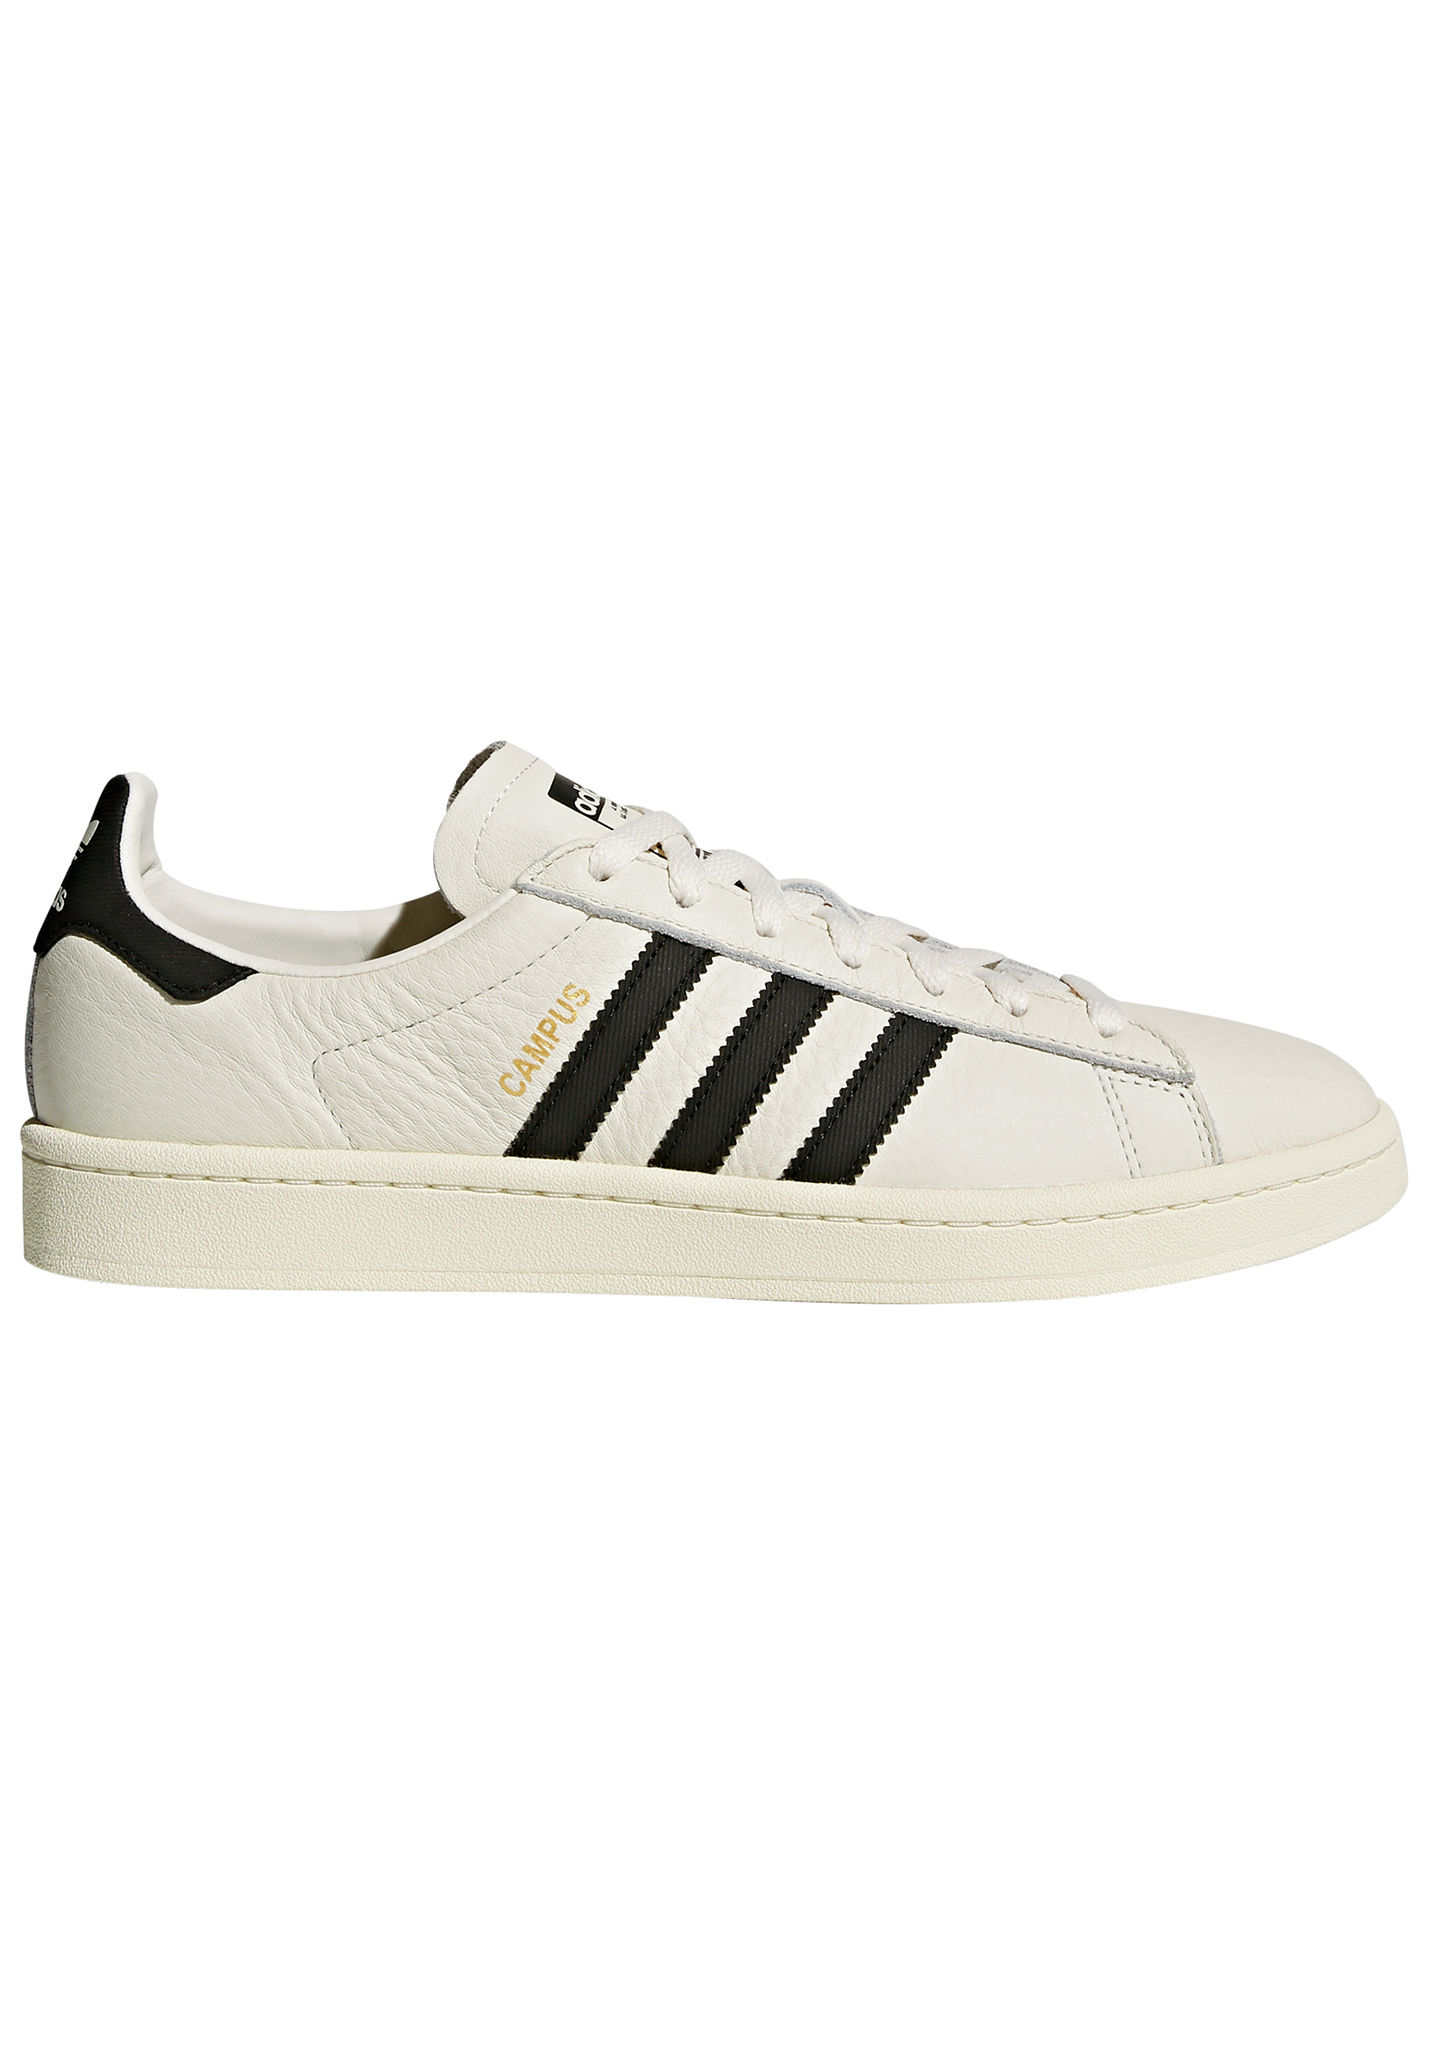 f40e69fa54b ADIDAS Campus - Sneakers for Men - White - Planet Sports